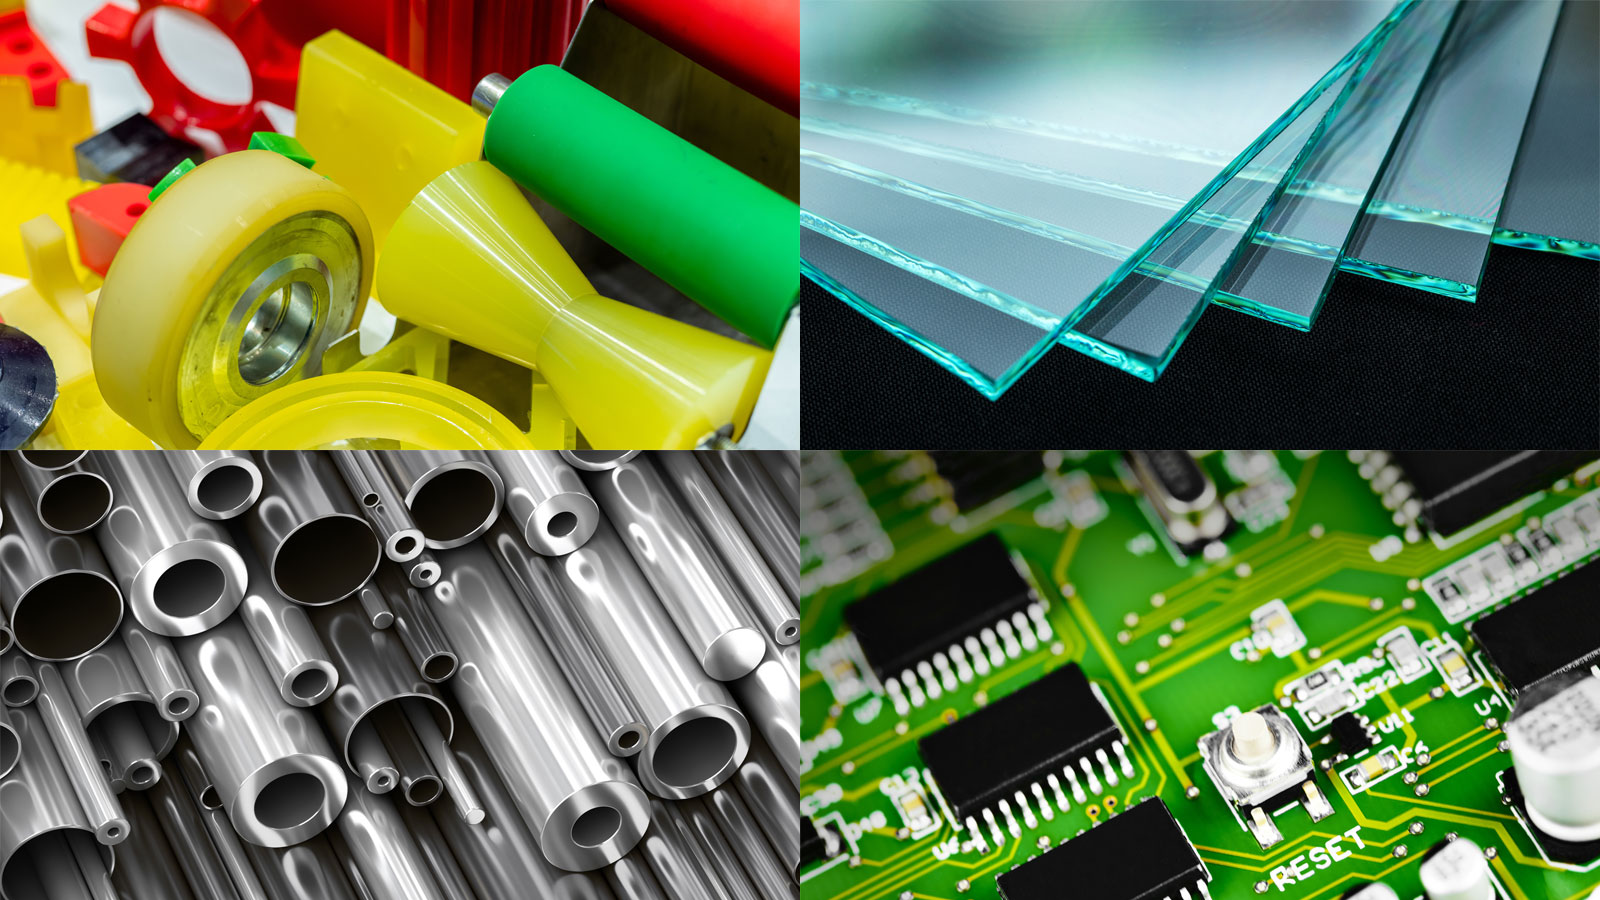 Image of substrates suitable for surface modification - plastic, metal, glass, and circuit boards